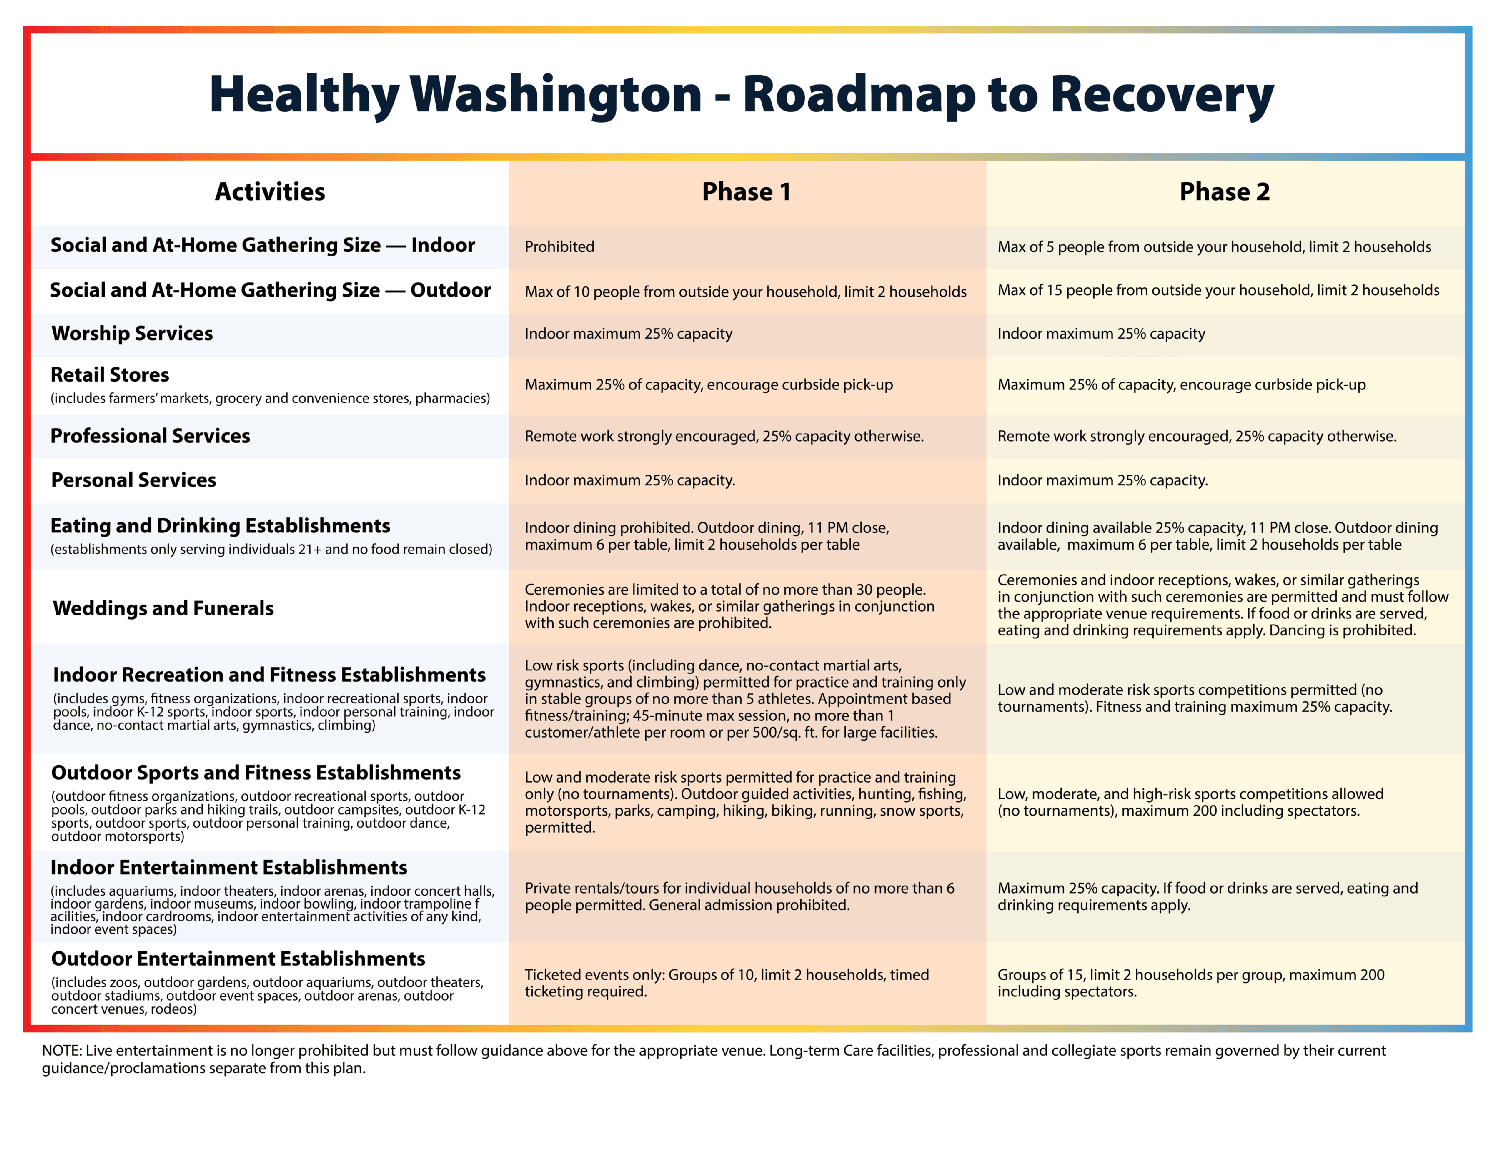 Roadmap to Recovery1